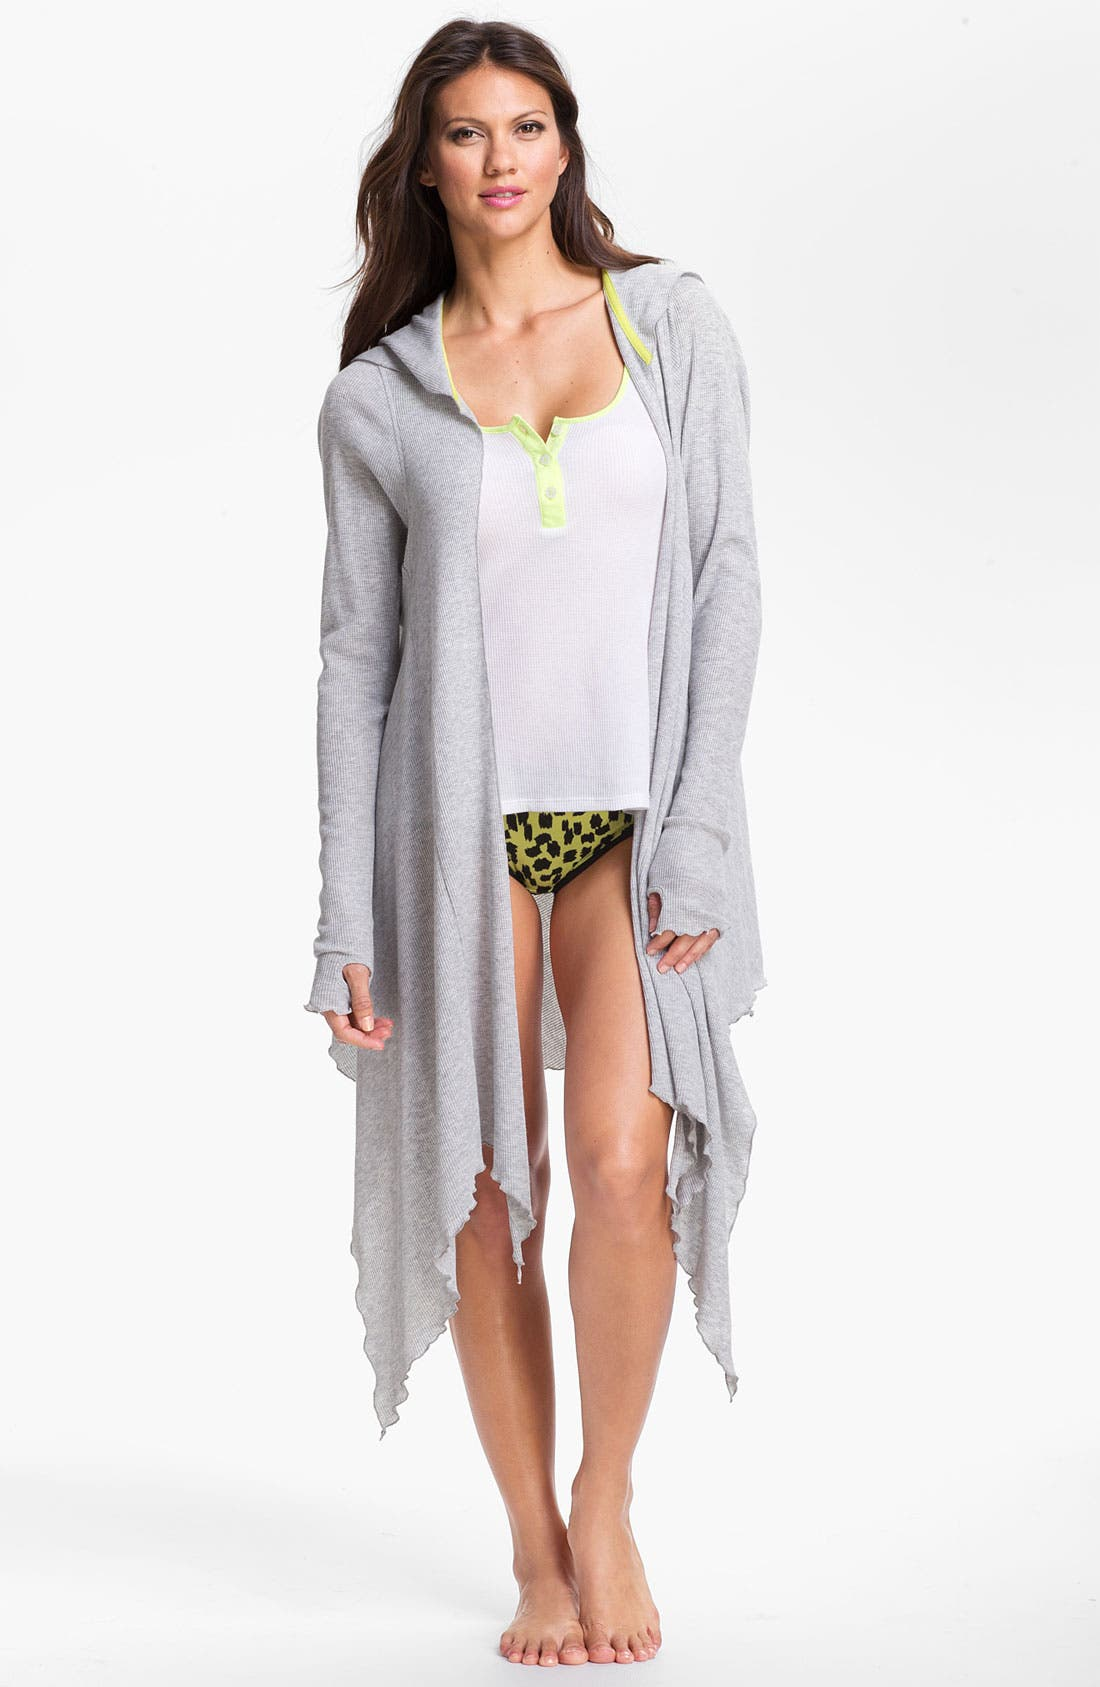 Main Image - Steve Madden 'Cozy Comfort' Thermal Knit Wrap